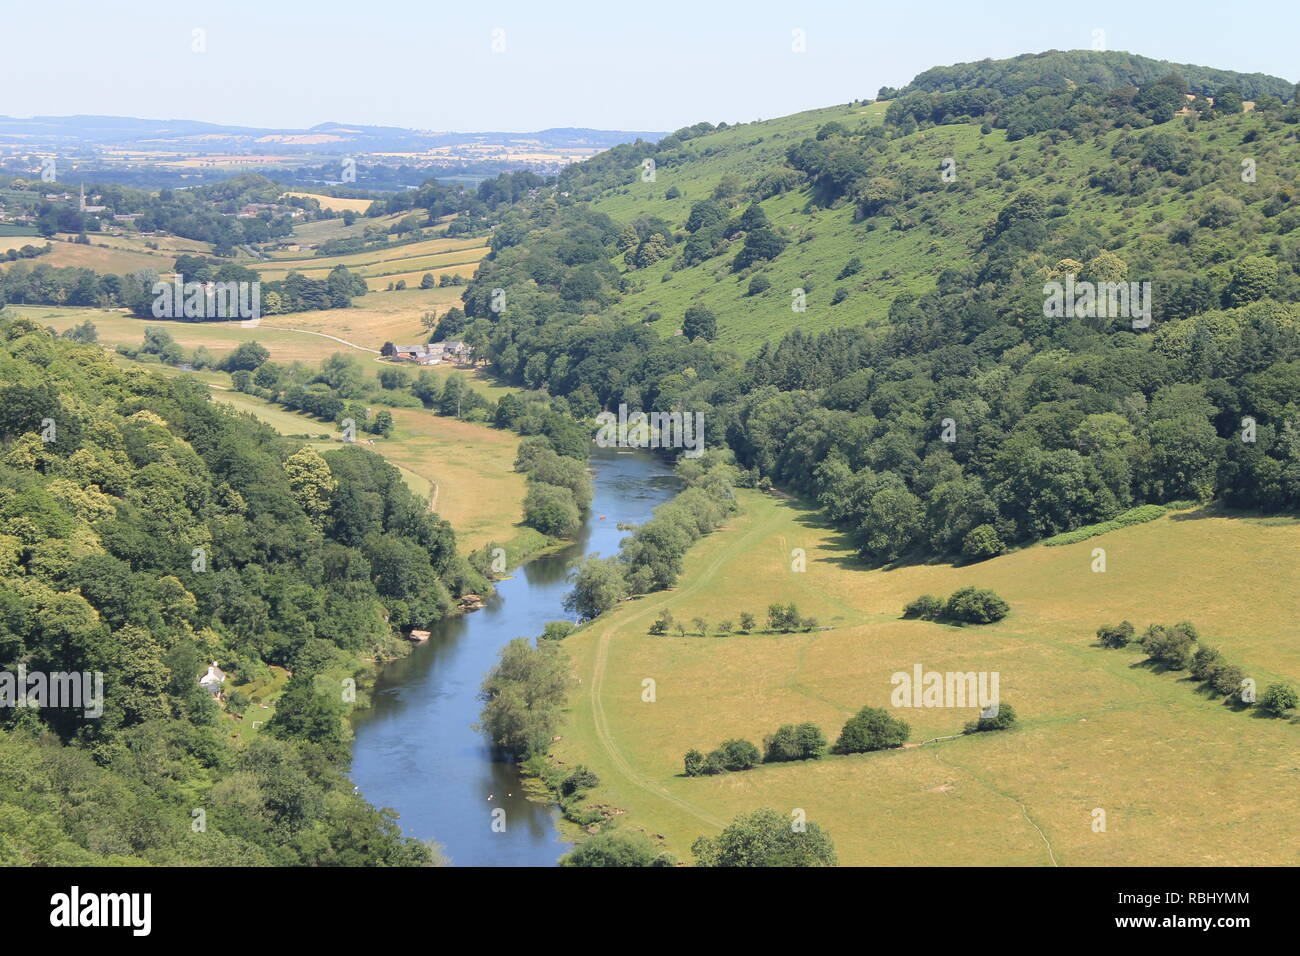 River Wye and Coppet Hill from Symonds Yat Rock, Herefordshire, England, UK - Stock Image